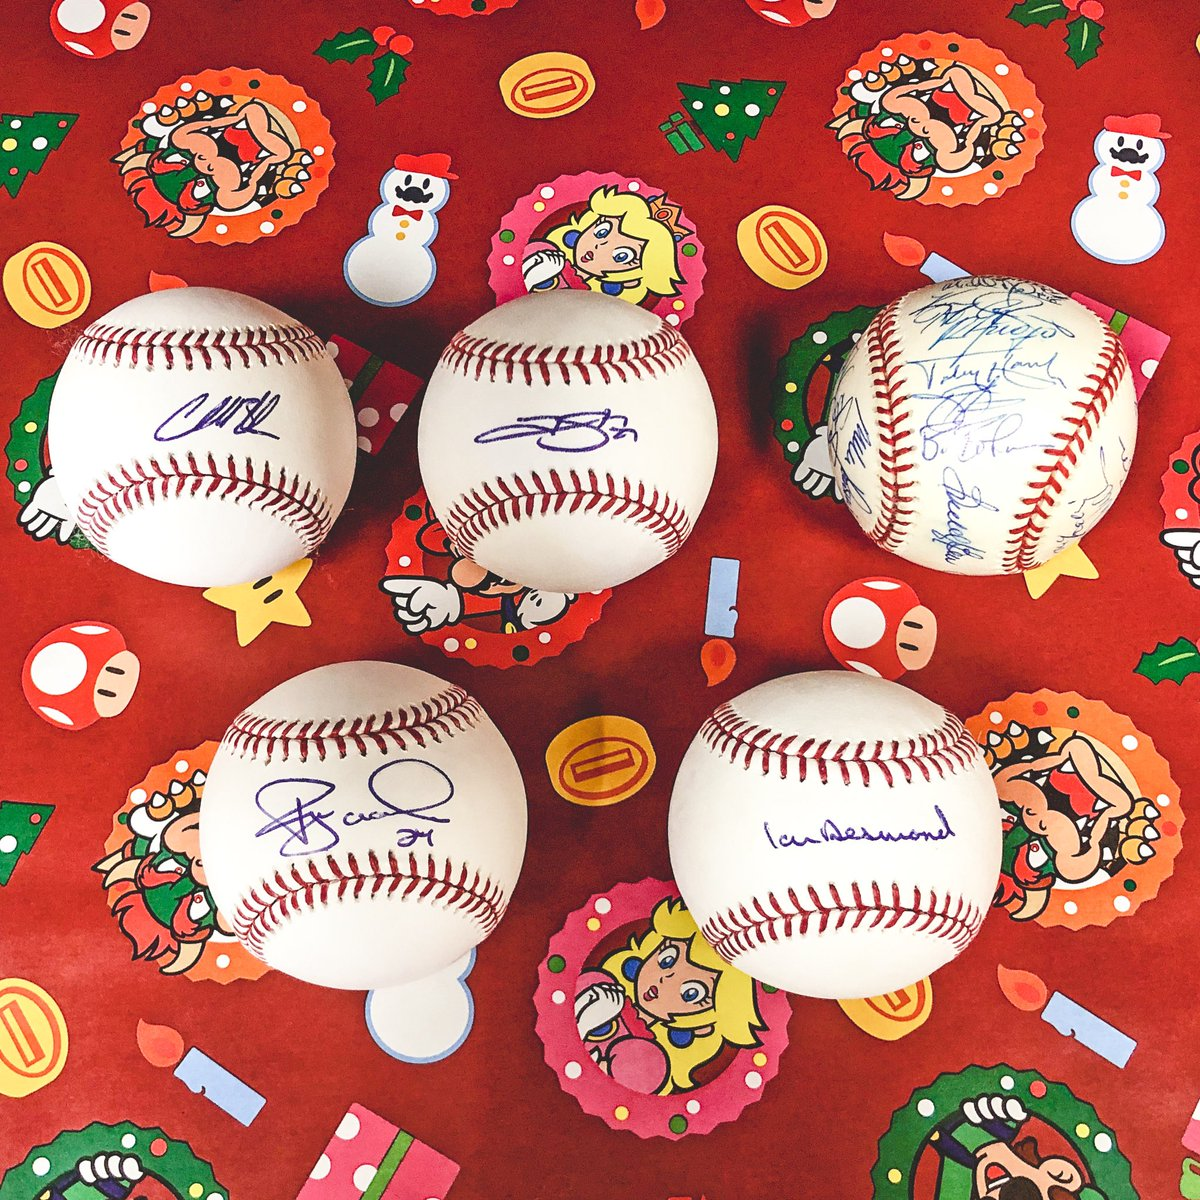 QUOTE TWEET with your favorite Rockies-related photo you've taken.  Use #12DaysOfRoxmas and you could win these five balls! 🆔